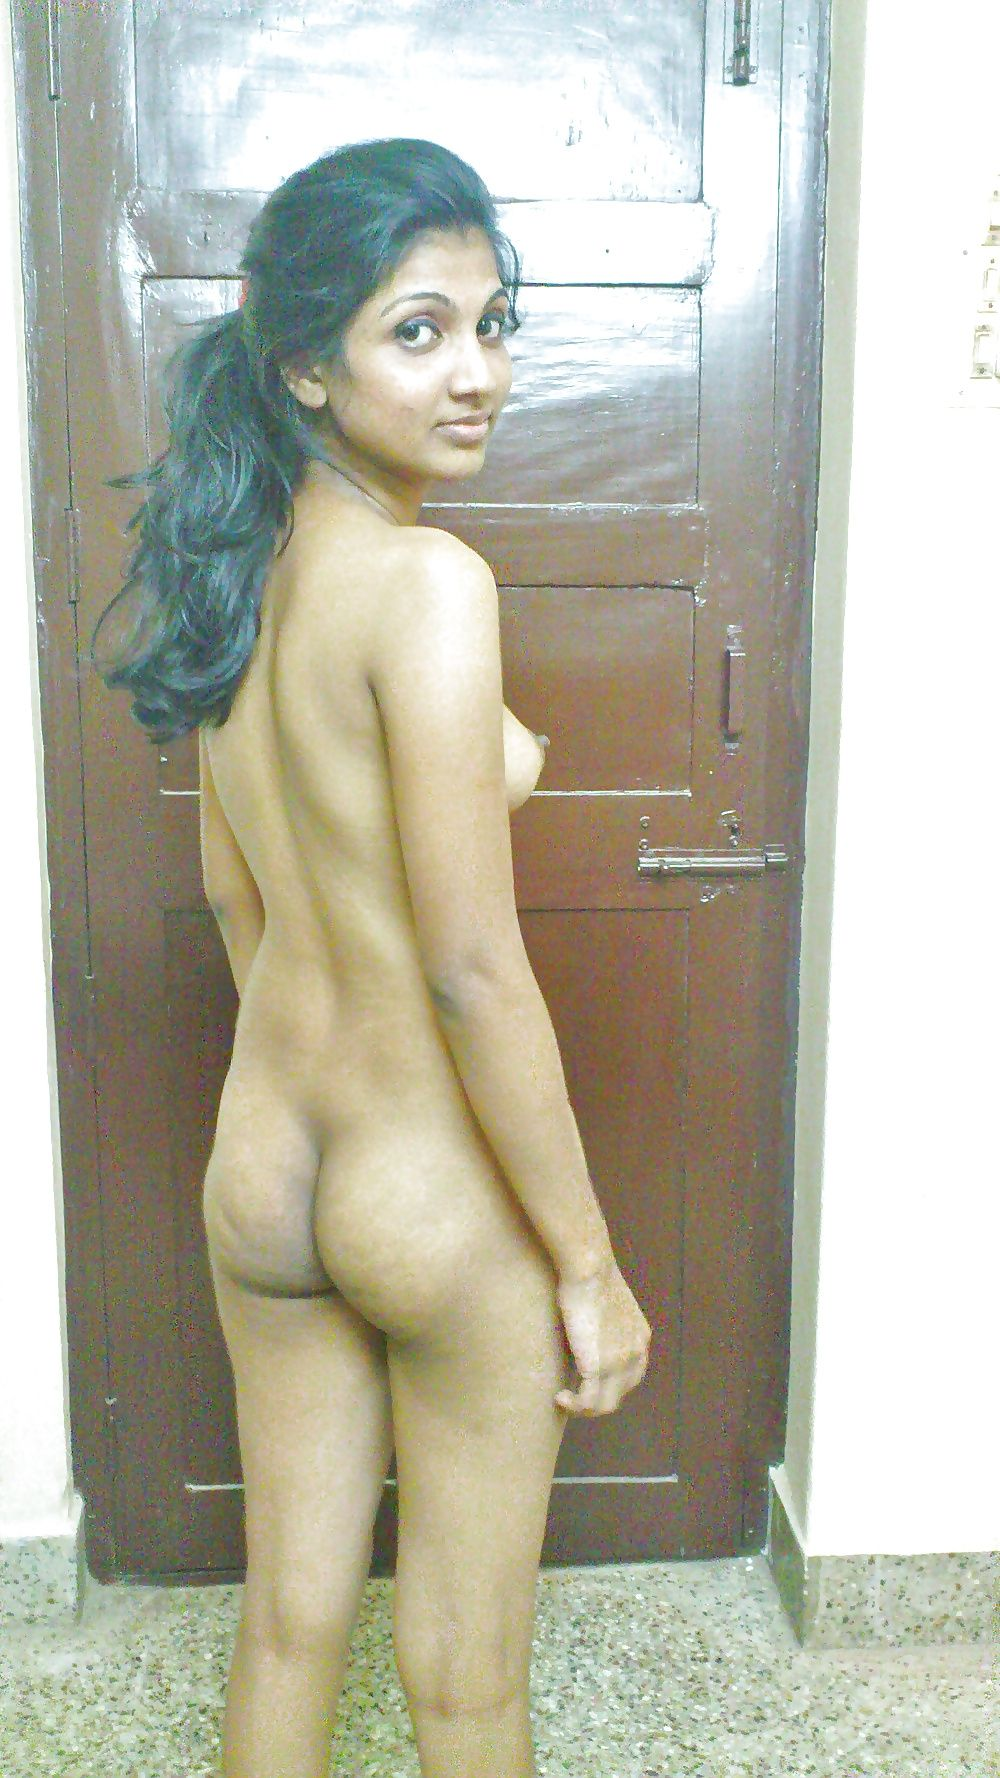 puja-girl-nude-photo-weekend-girl-picture